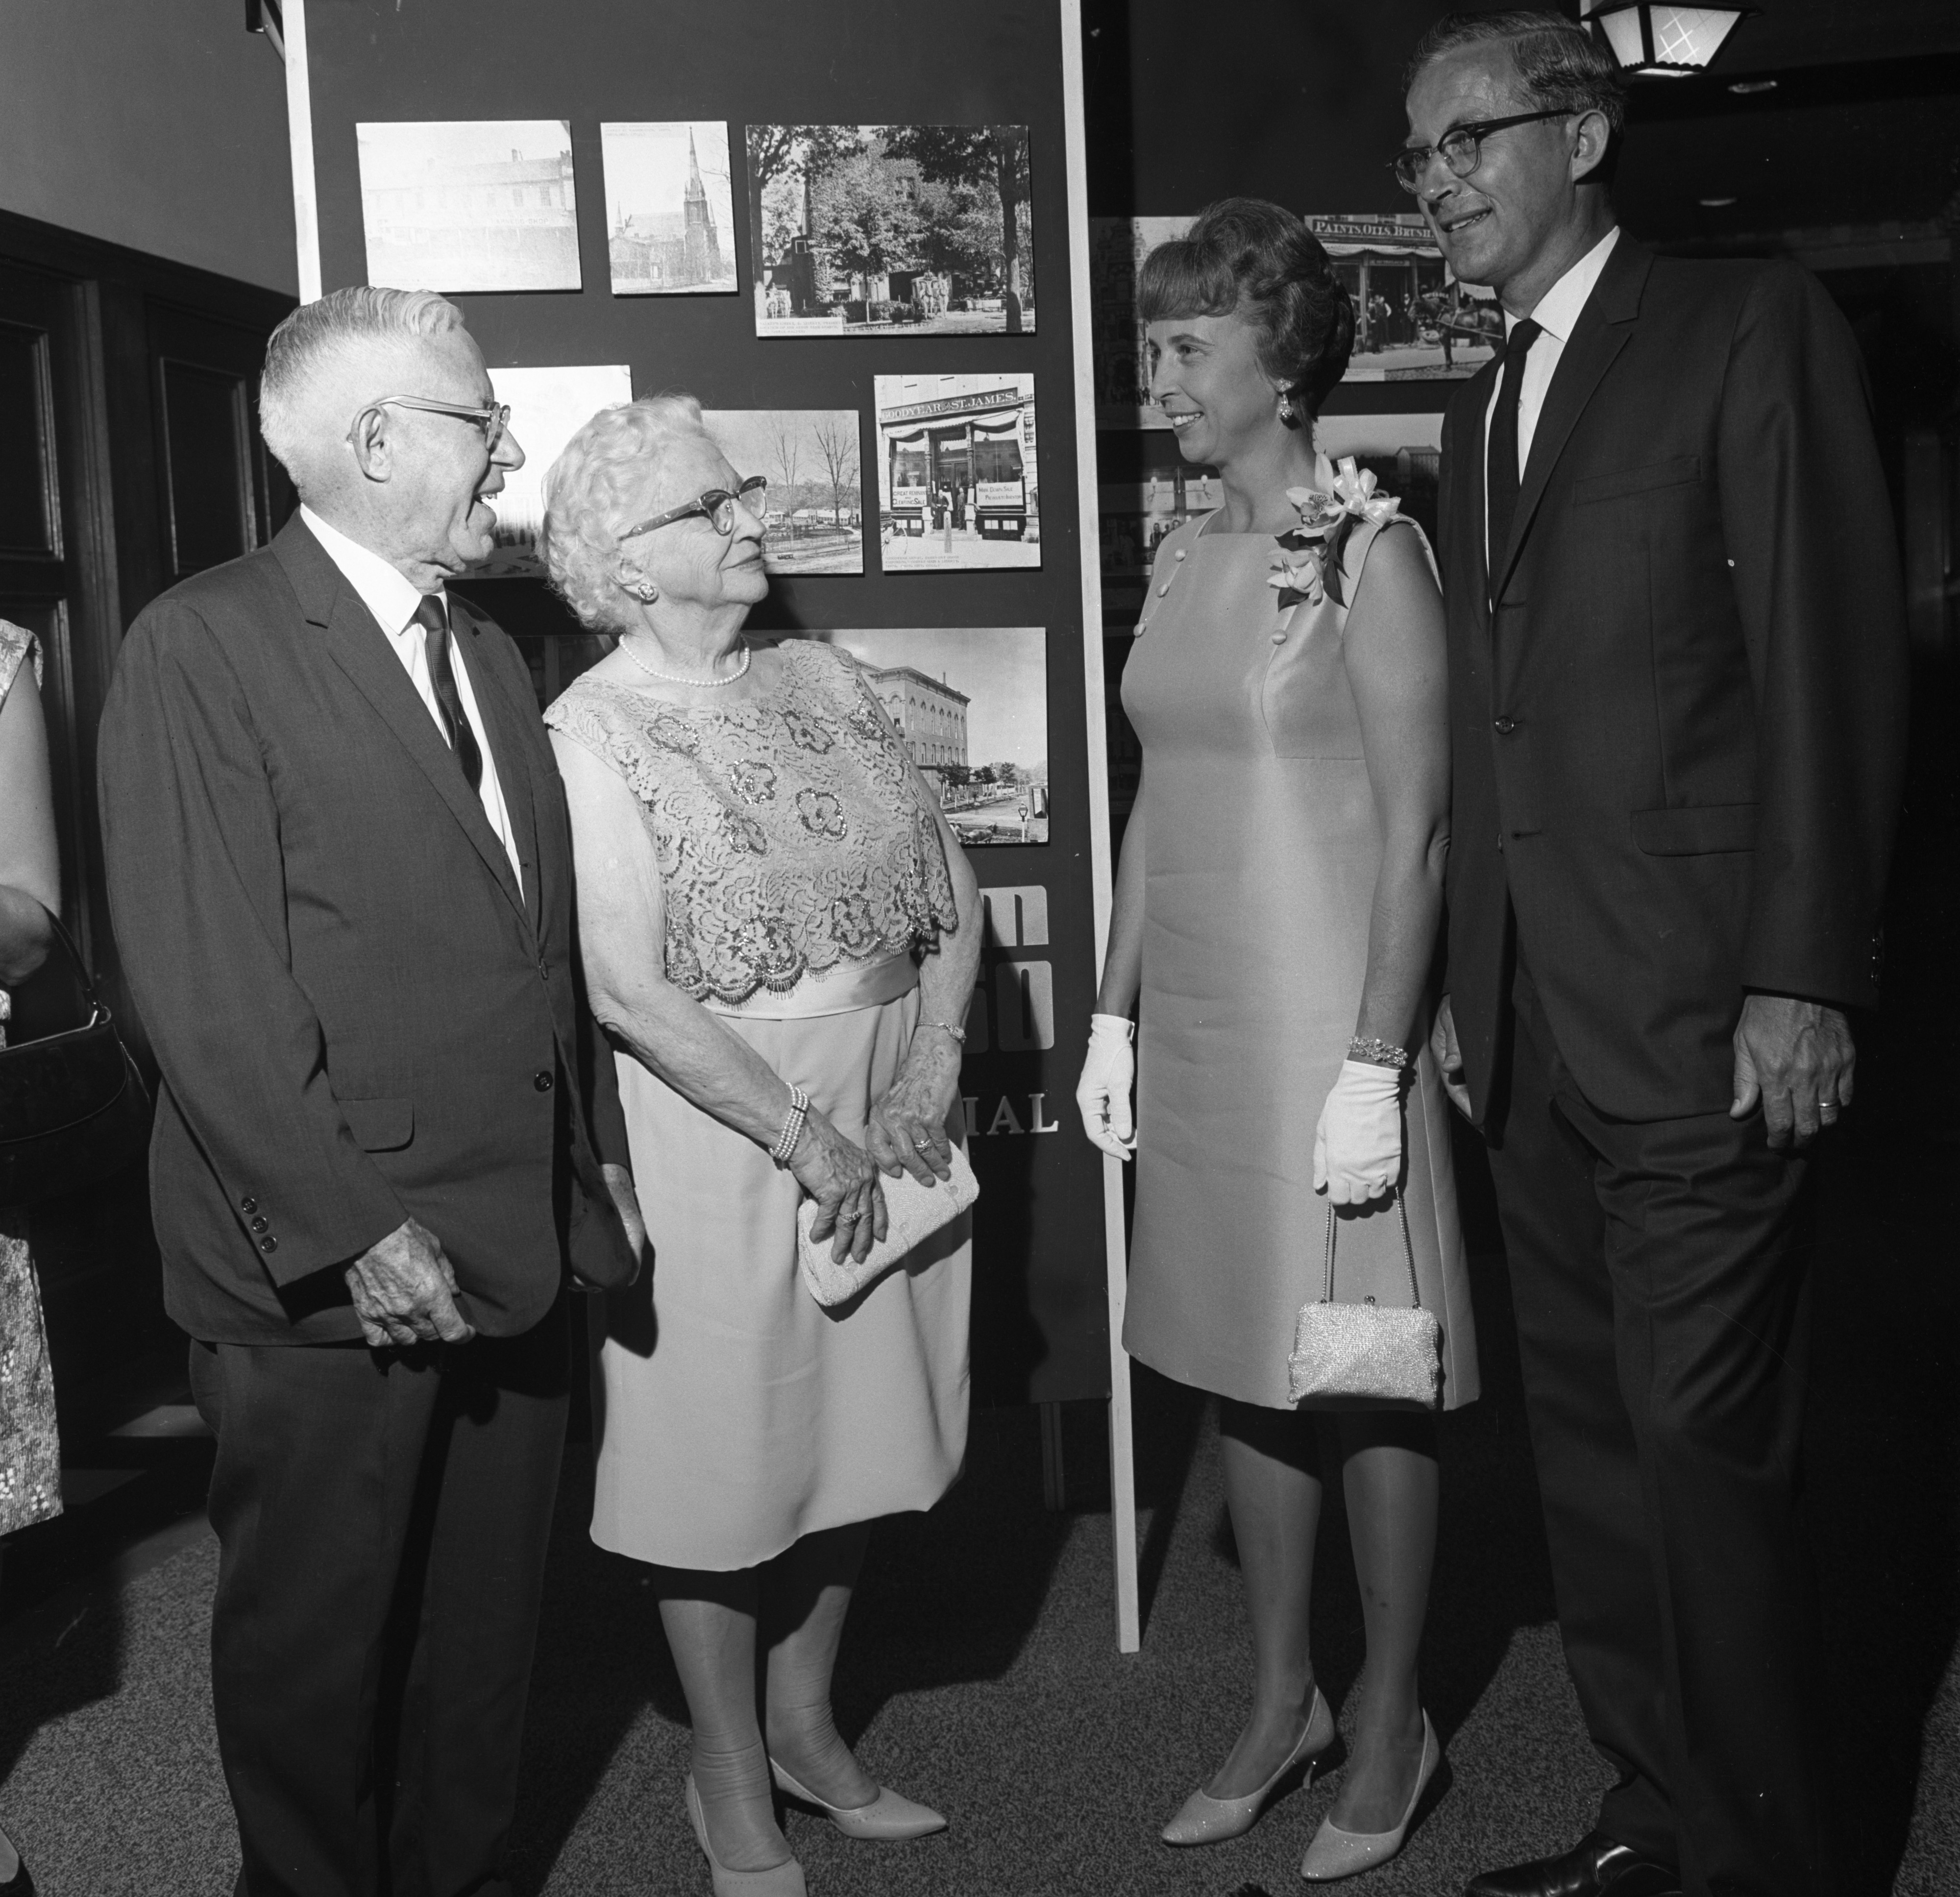 Wendell & Violet Hulcher, On Right, Talk To Guests At The U-M Sesquicentennial Birthday Gala At The Union Ballroom, August 28, 1967 image